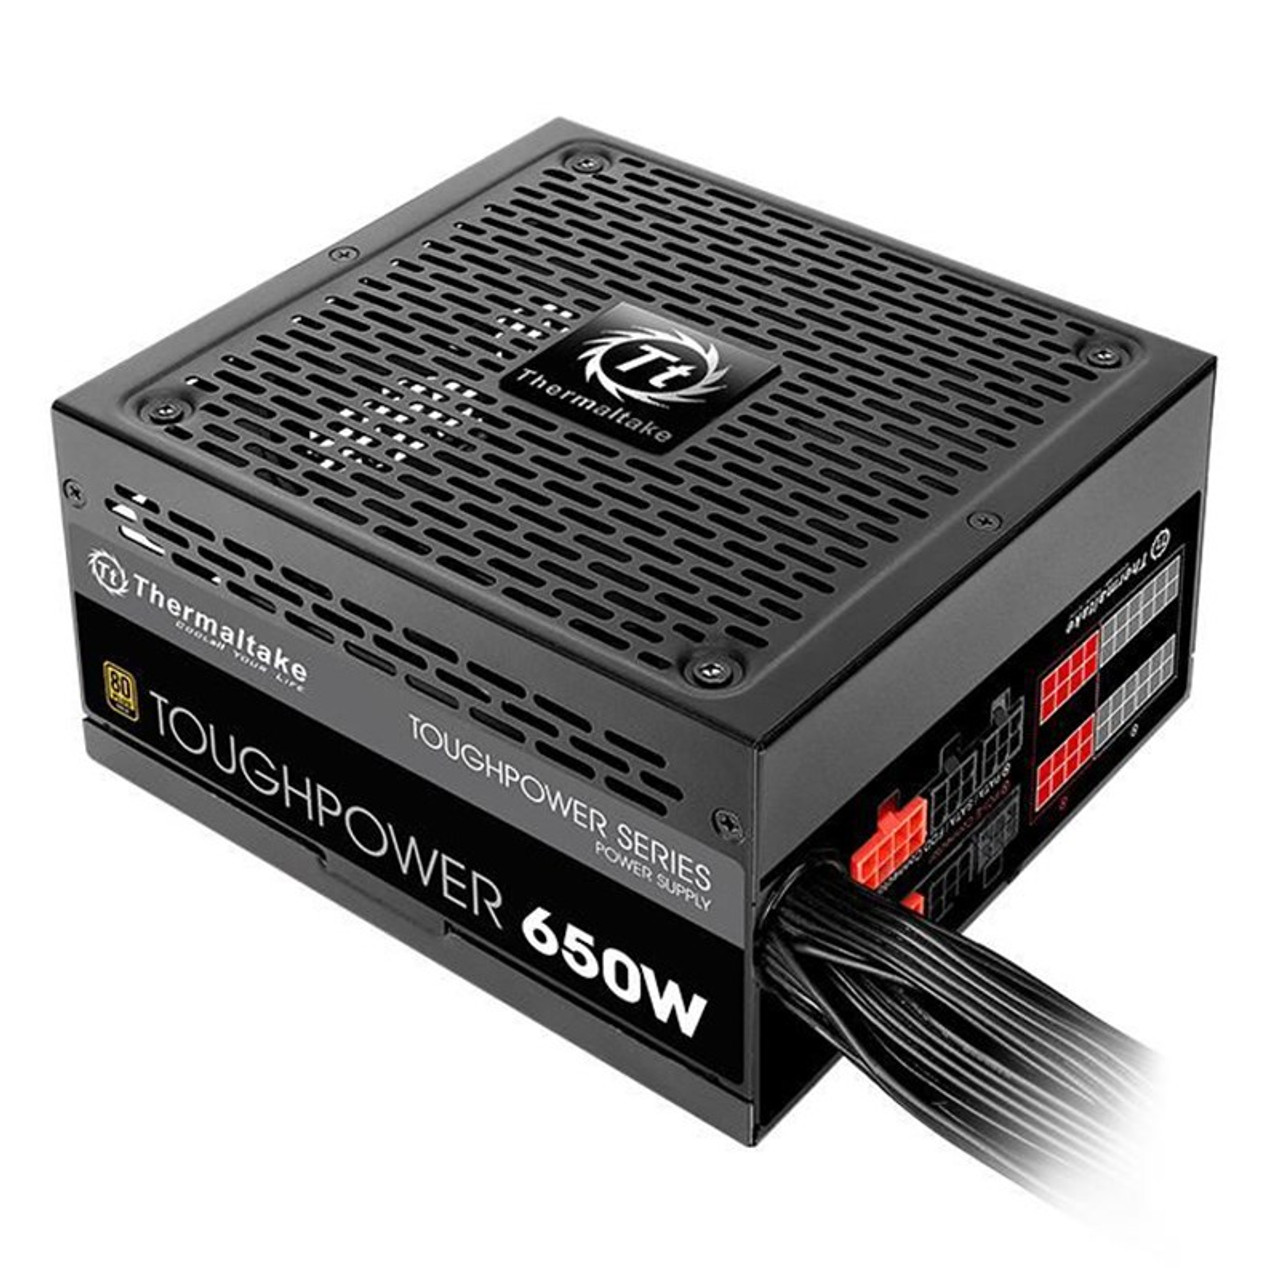 Image for Thermaltake Toughpower 650W 80+ Gold Semi-Modular Power Supply CX Computer Superstore